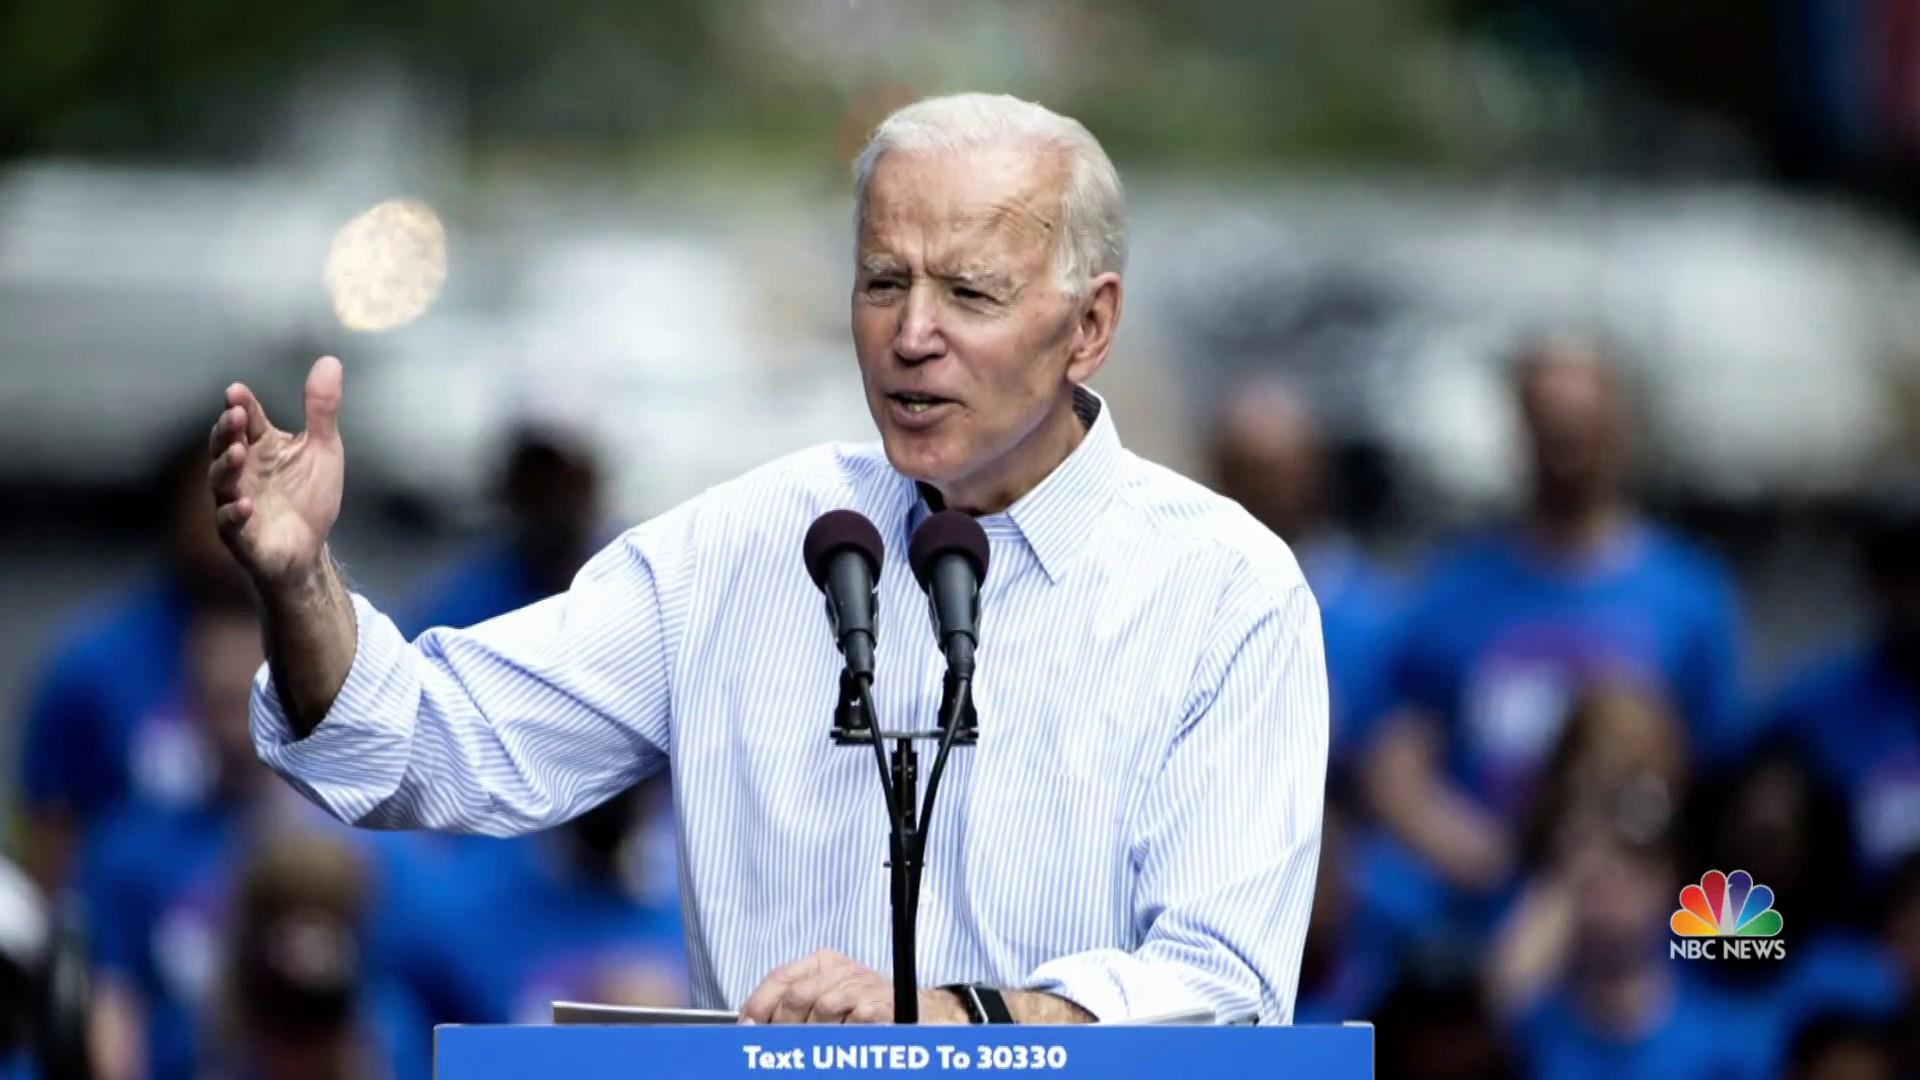 Backlash from Dems after Biden touts experience getting 'things done' with two segregationist senators